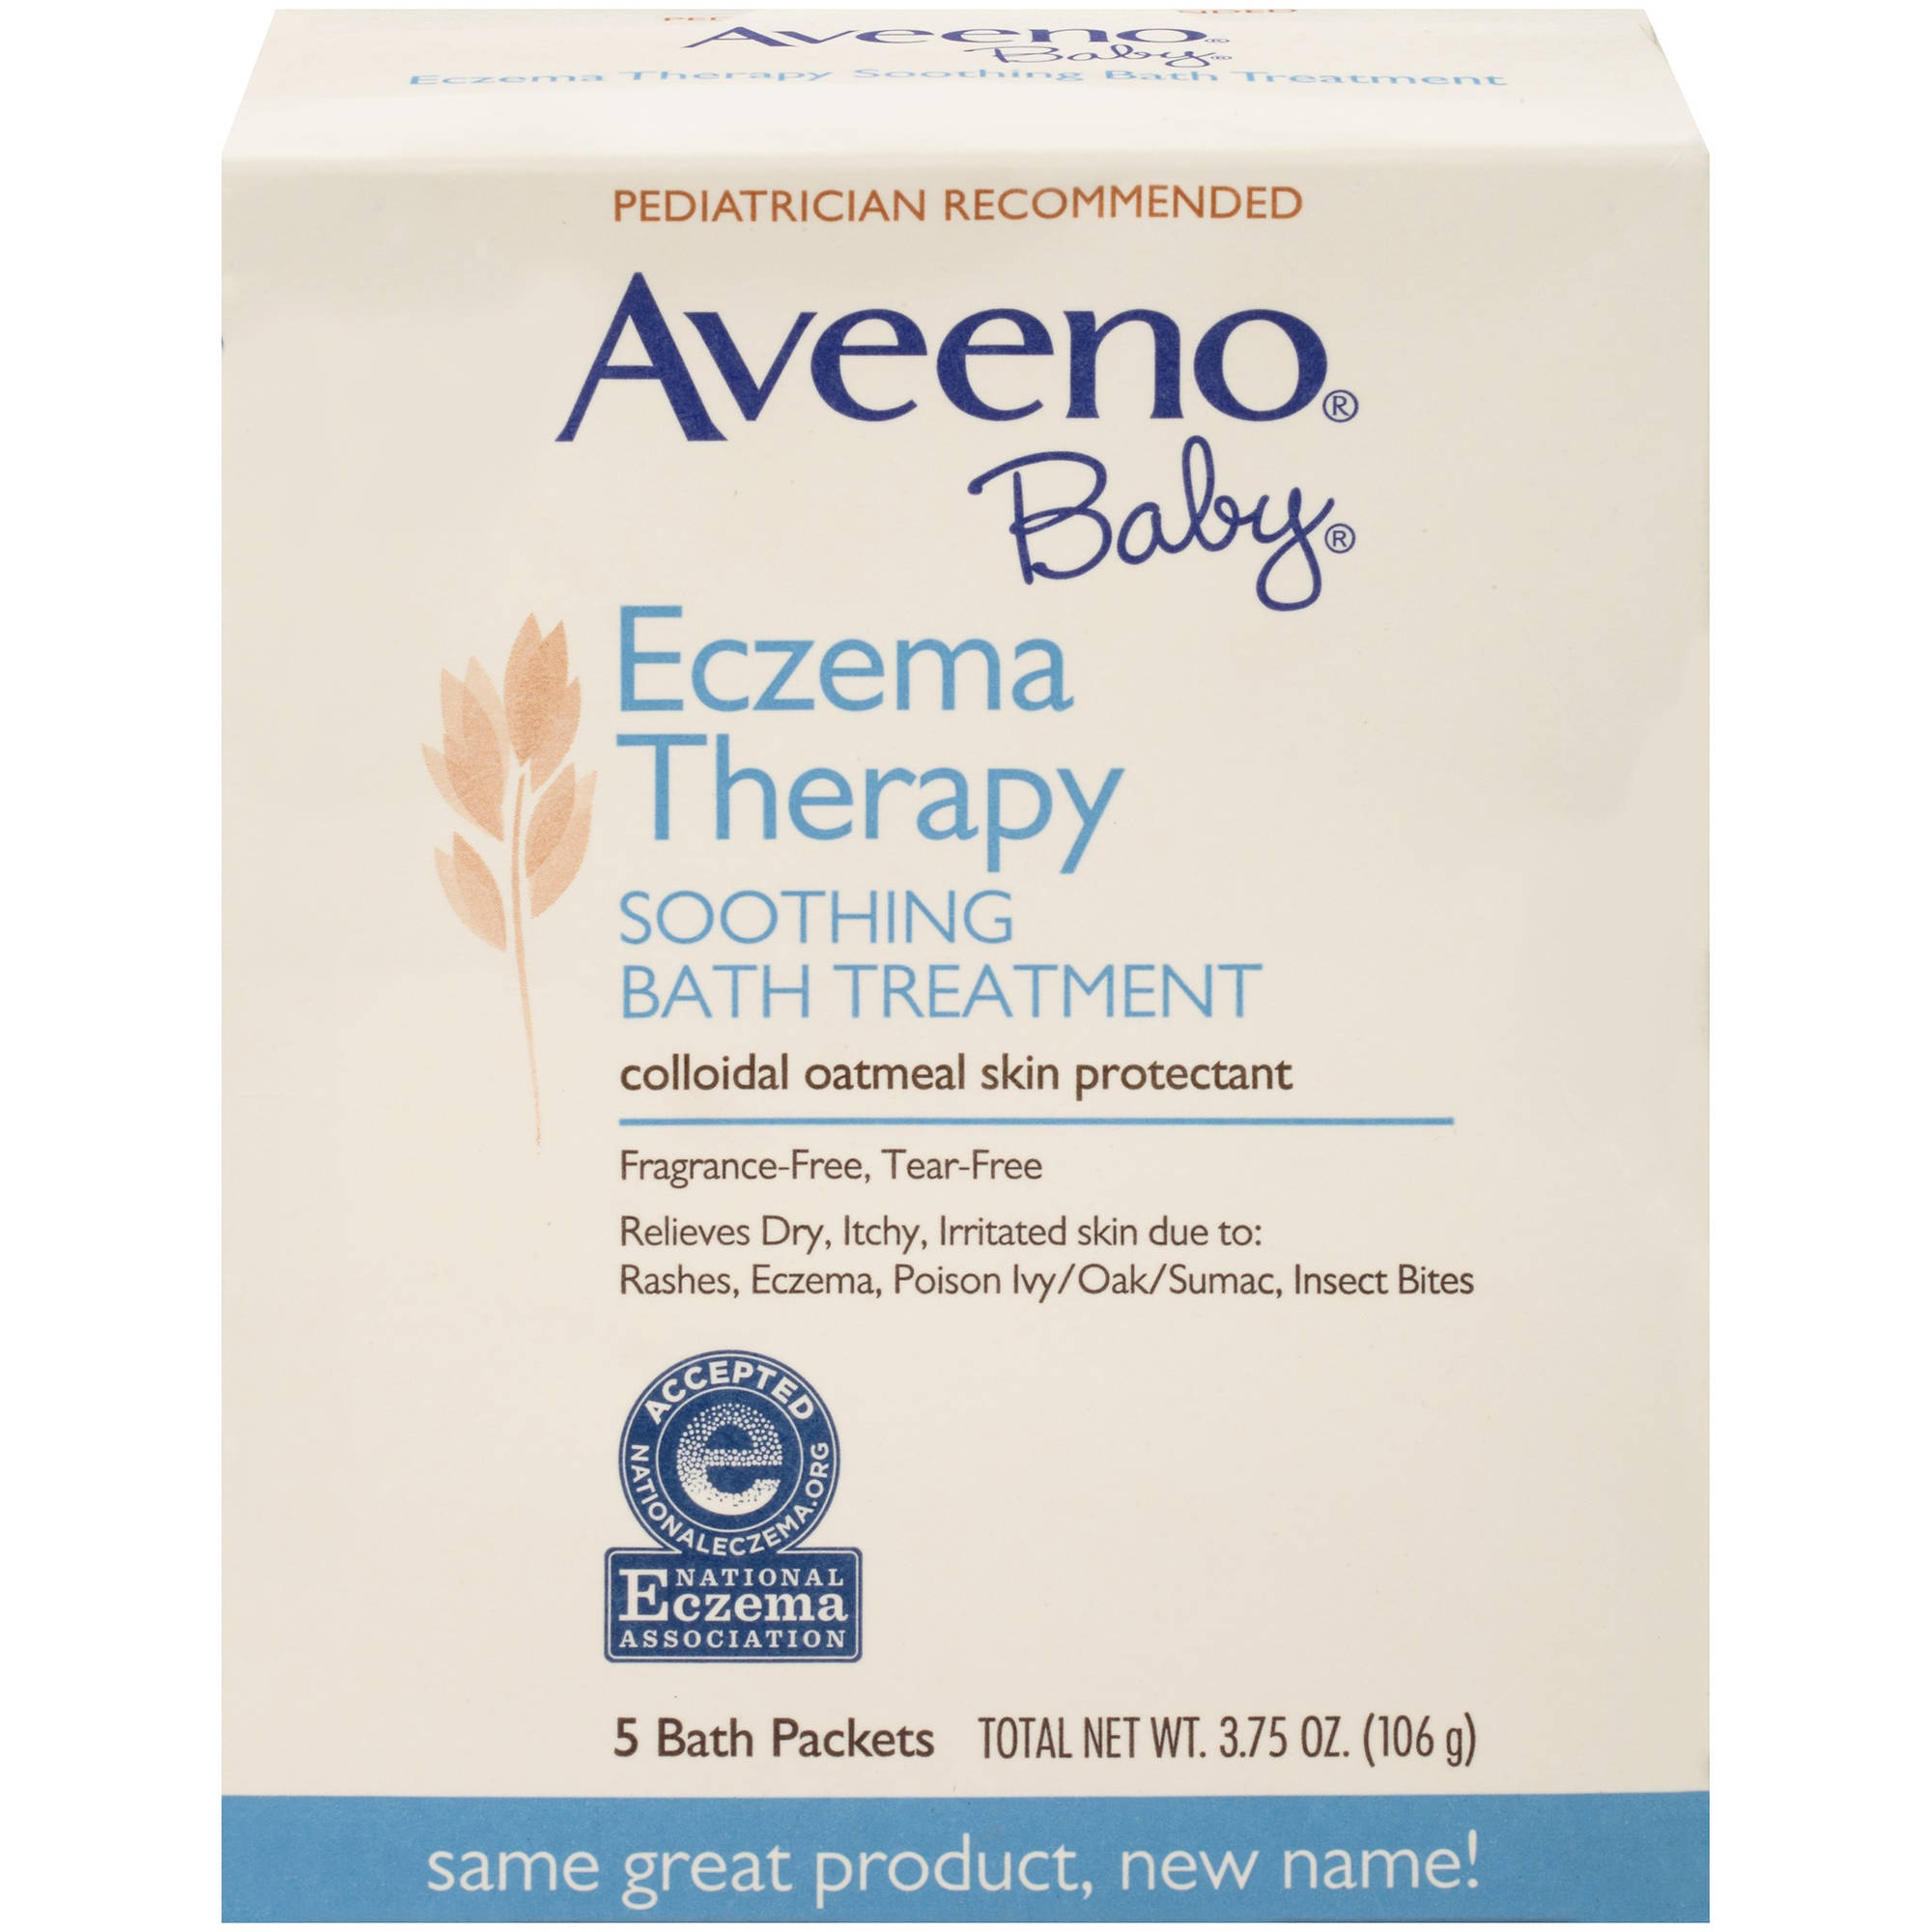 Aveeno Baby Eczema Therapy Soothing Bath Treatment, 5 Count